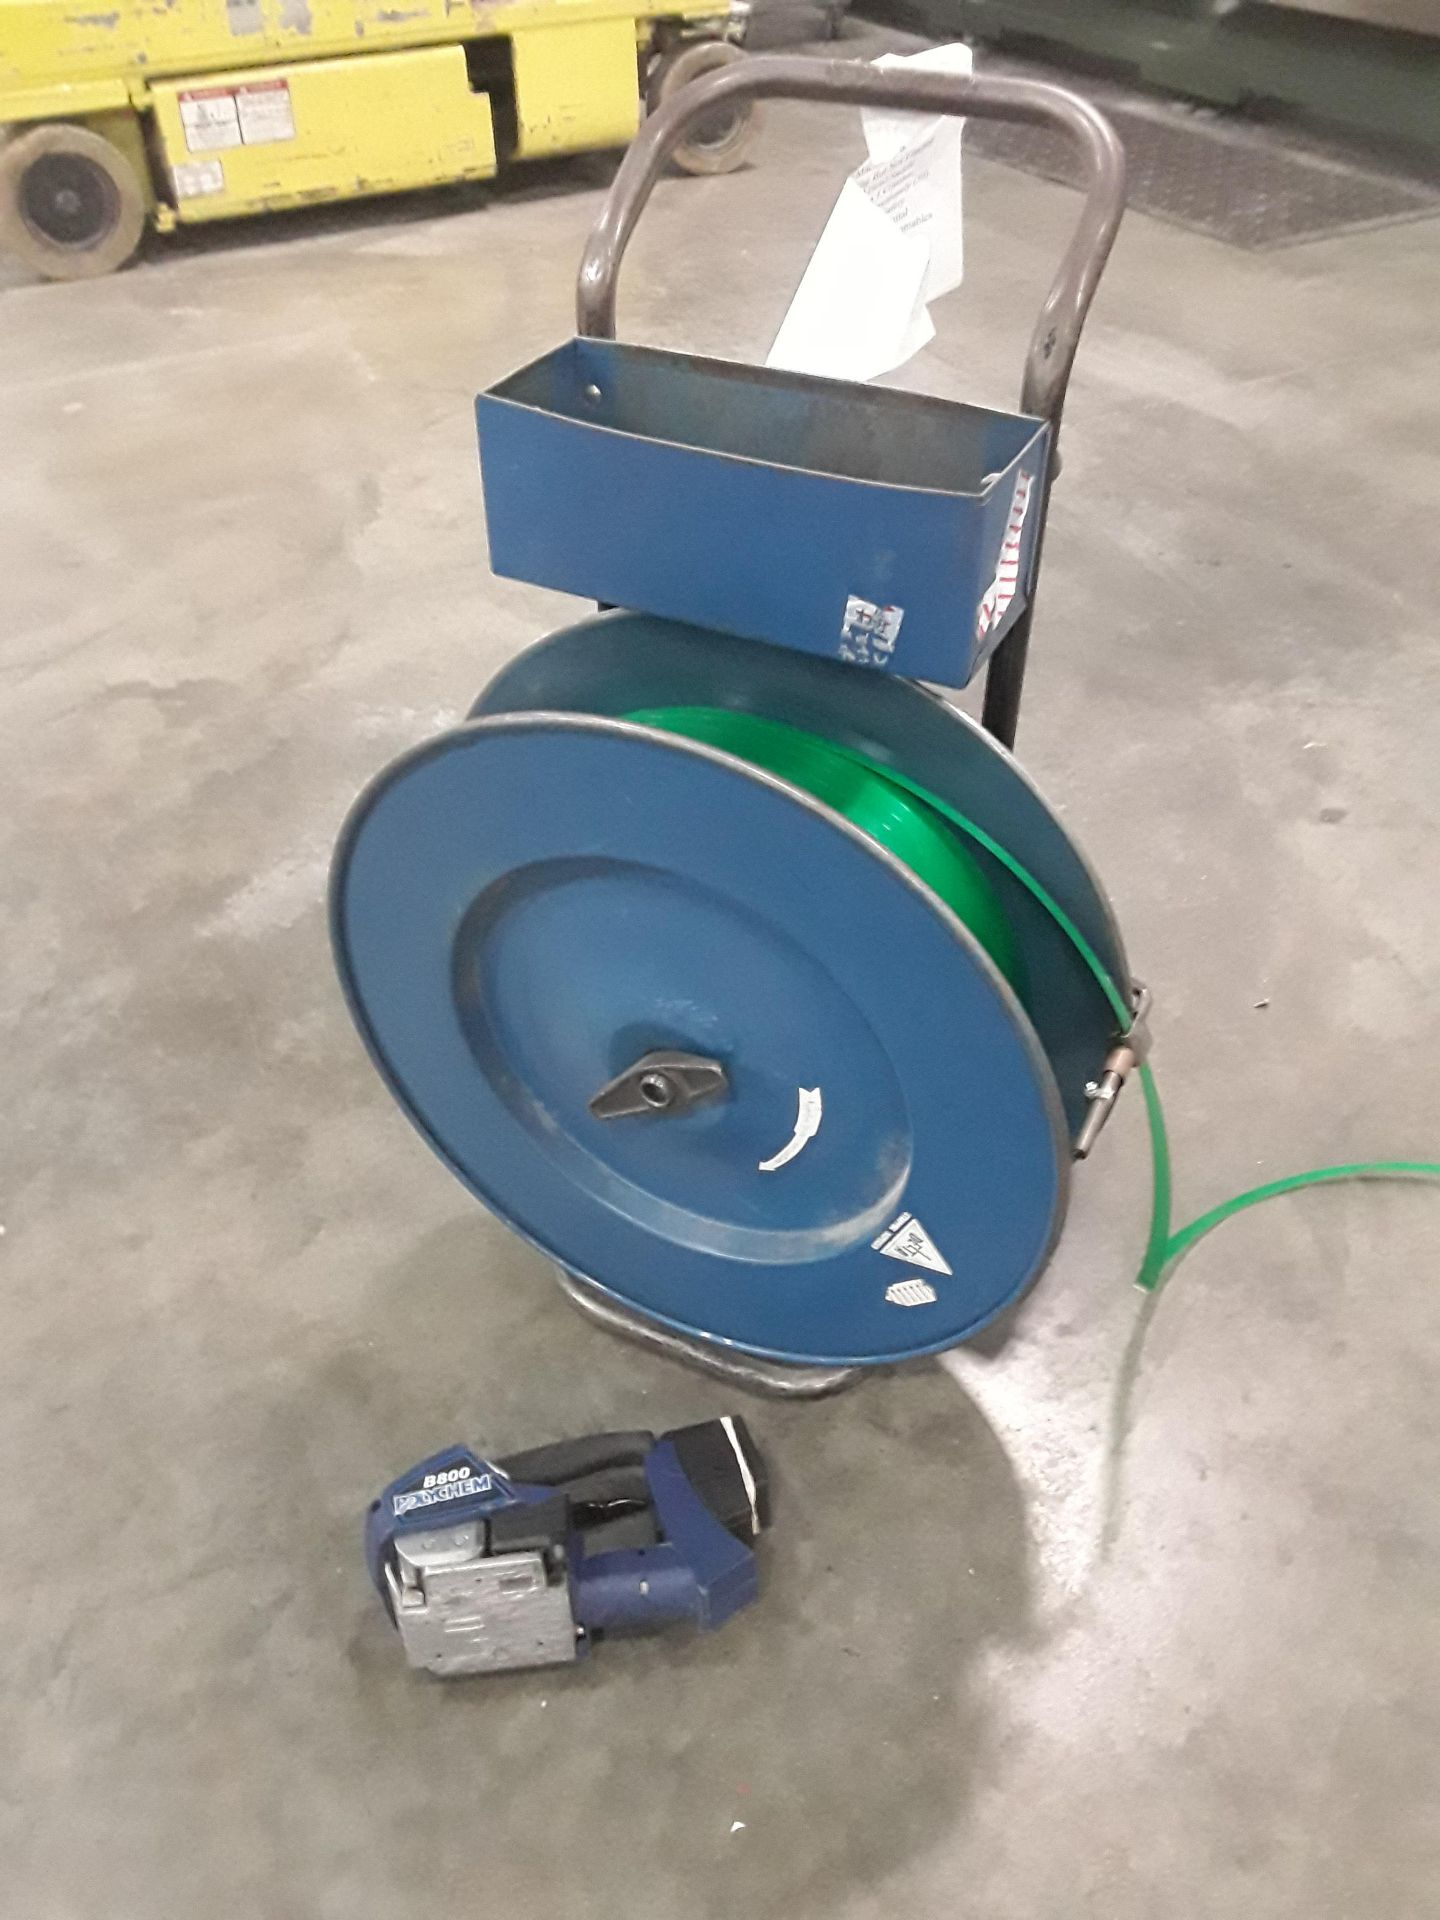 Lot 5 - Polychem B800 Strapping Tool with Strapping Cart